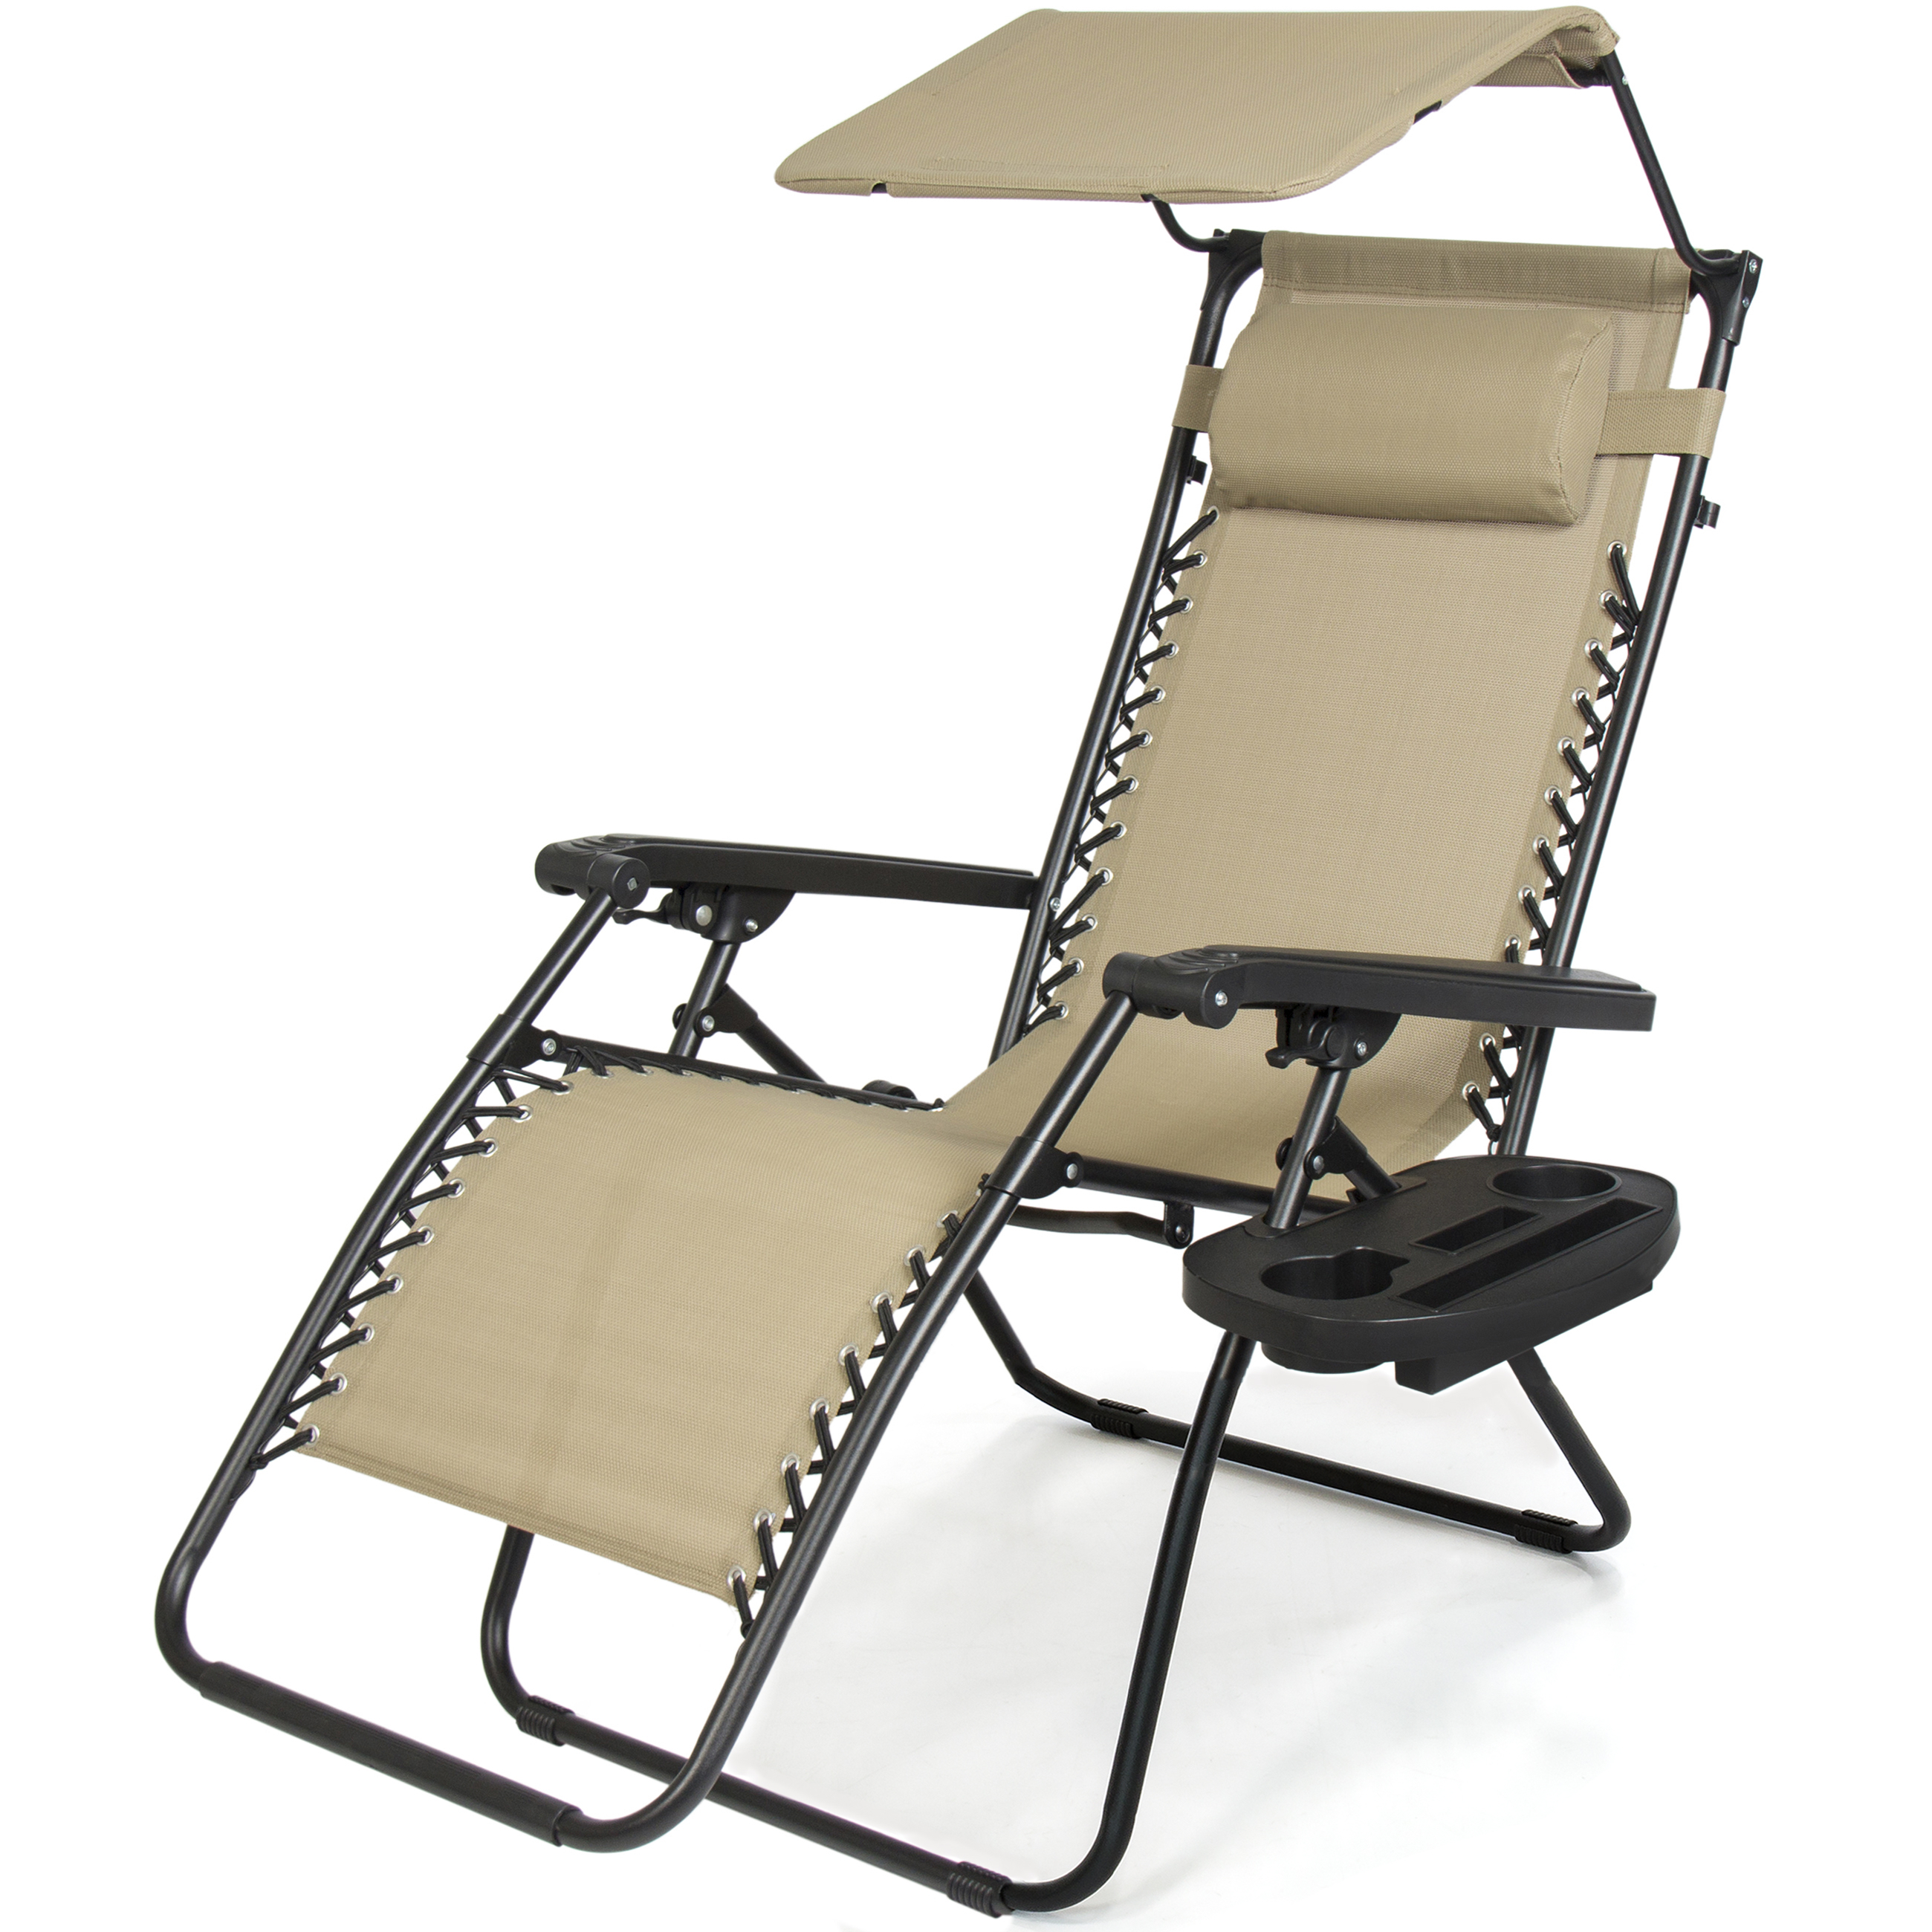 Deluxe Padded Chairs With Canopy And Tray Regarding Trendy Best Choice Products Folding Steel Mesh Zero Gravity Recliner Lounge Chair  W/ Adjustable Canopy Shade And Cup Holder Accessory Tray, Beige – (View 8 of 25)